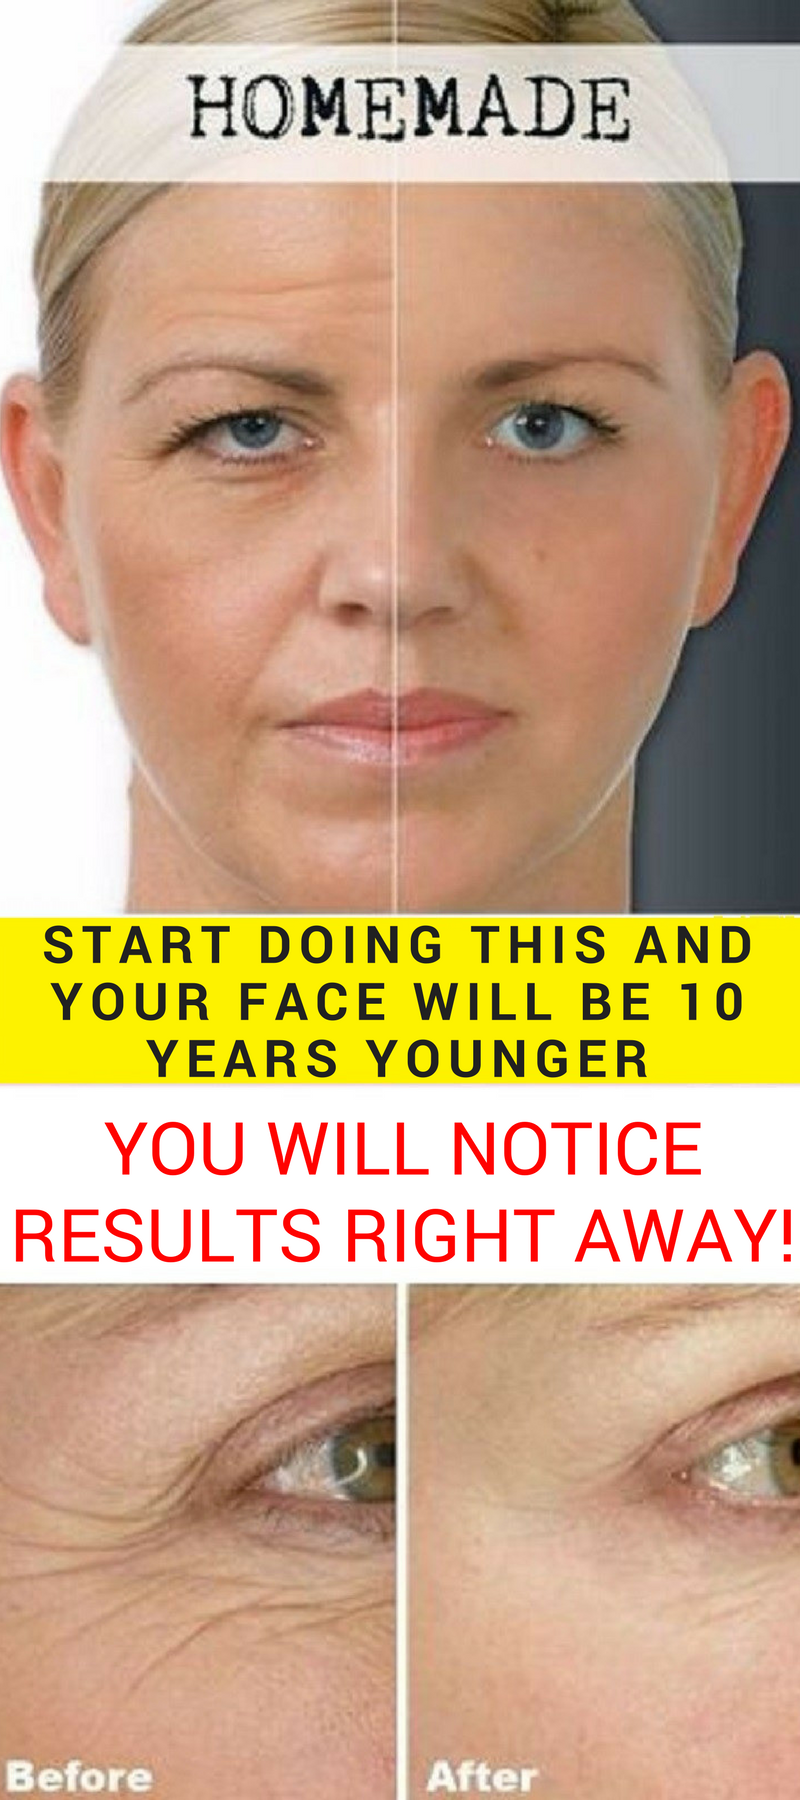 How to rejuvenate your face 79